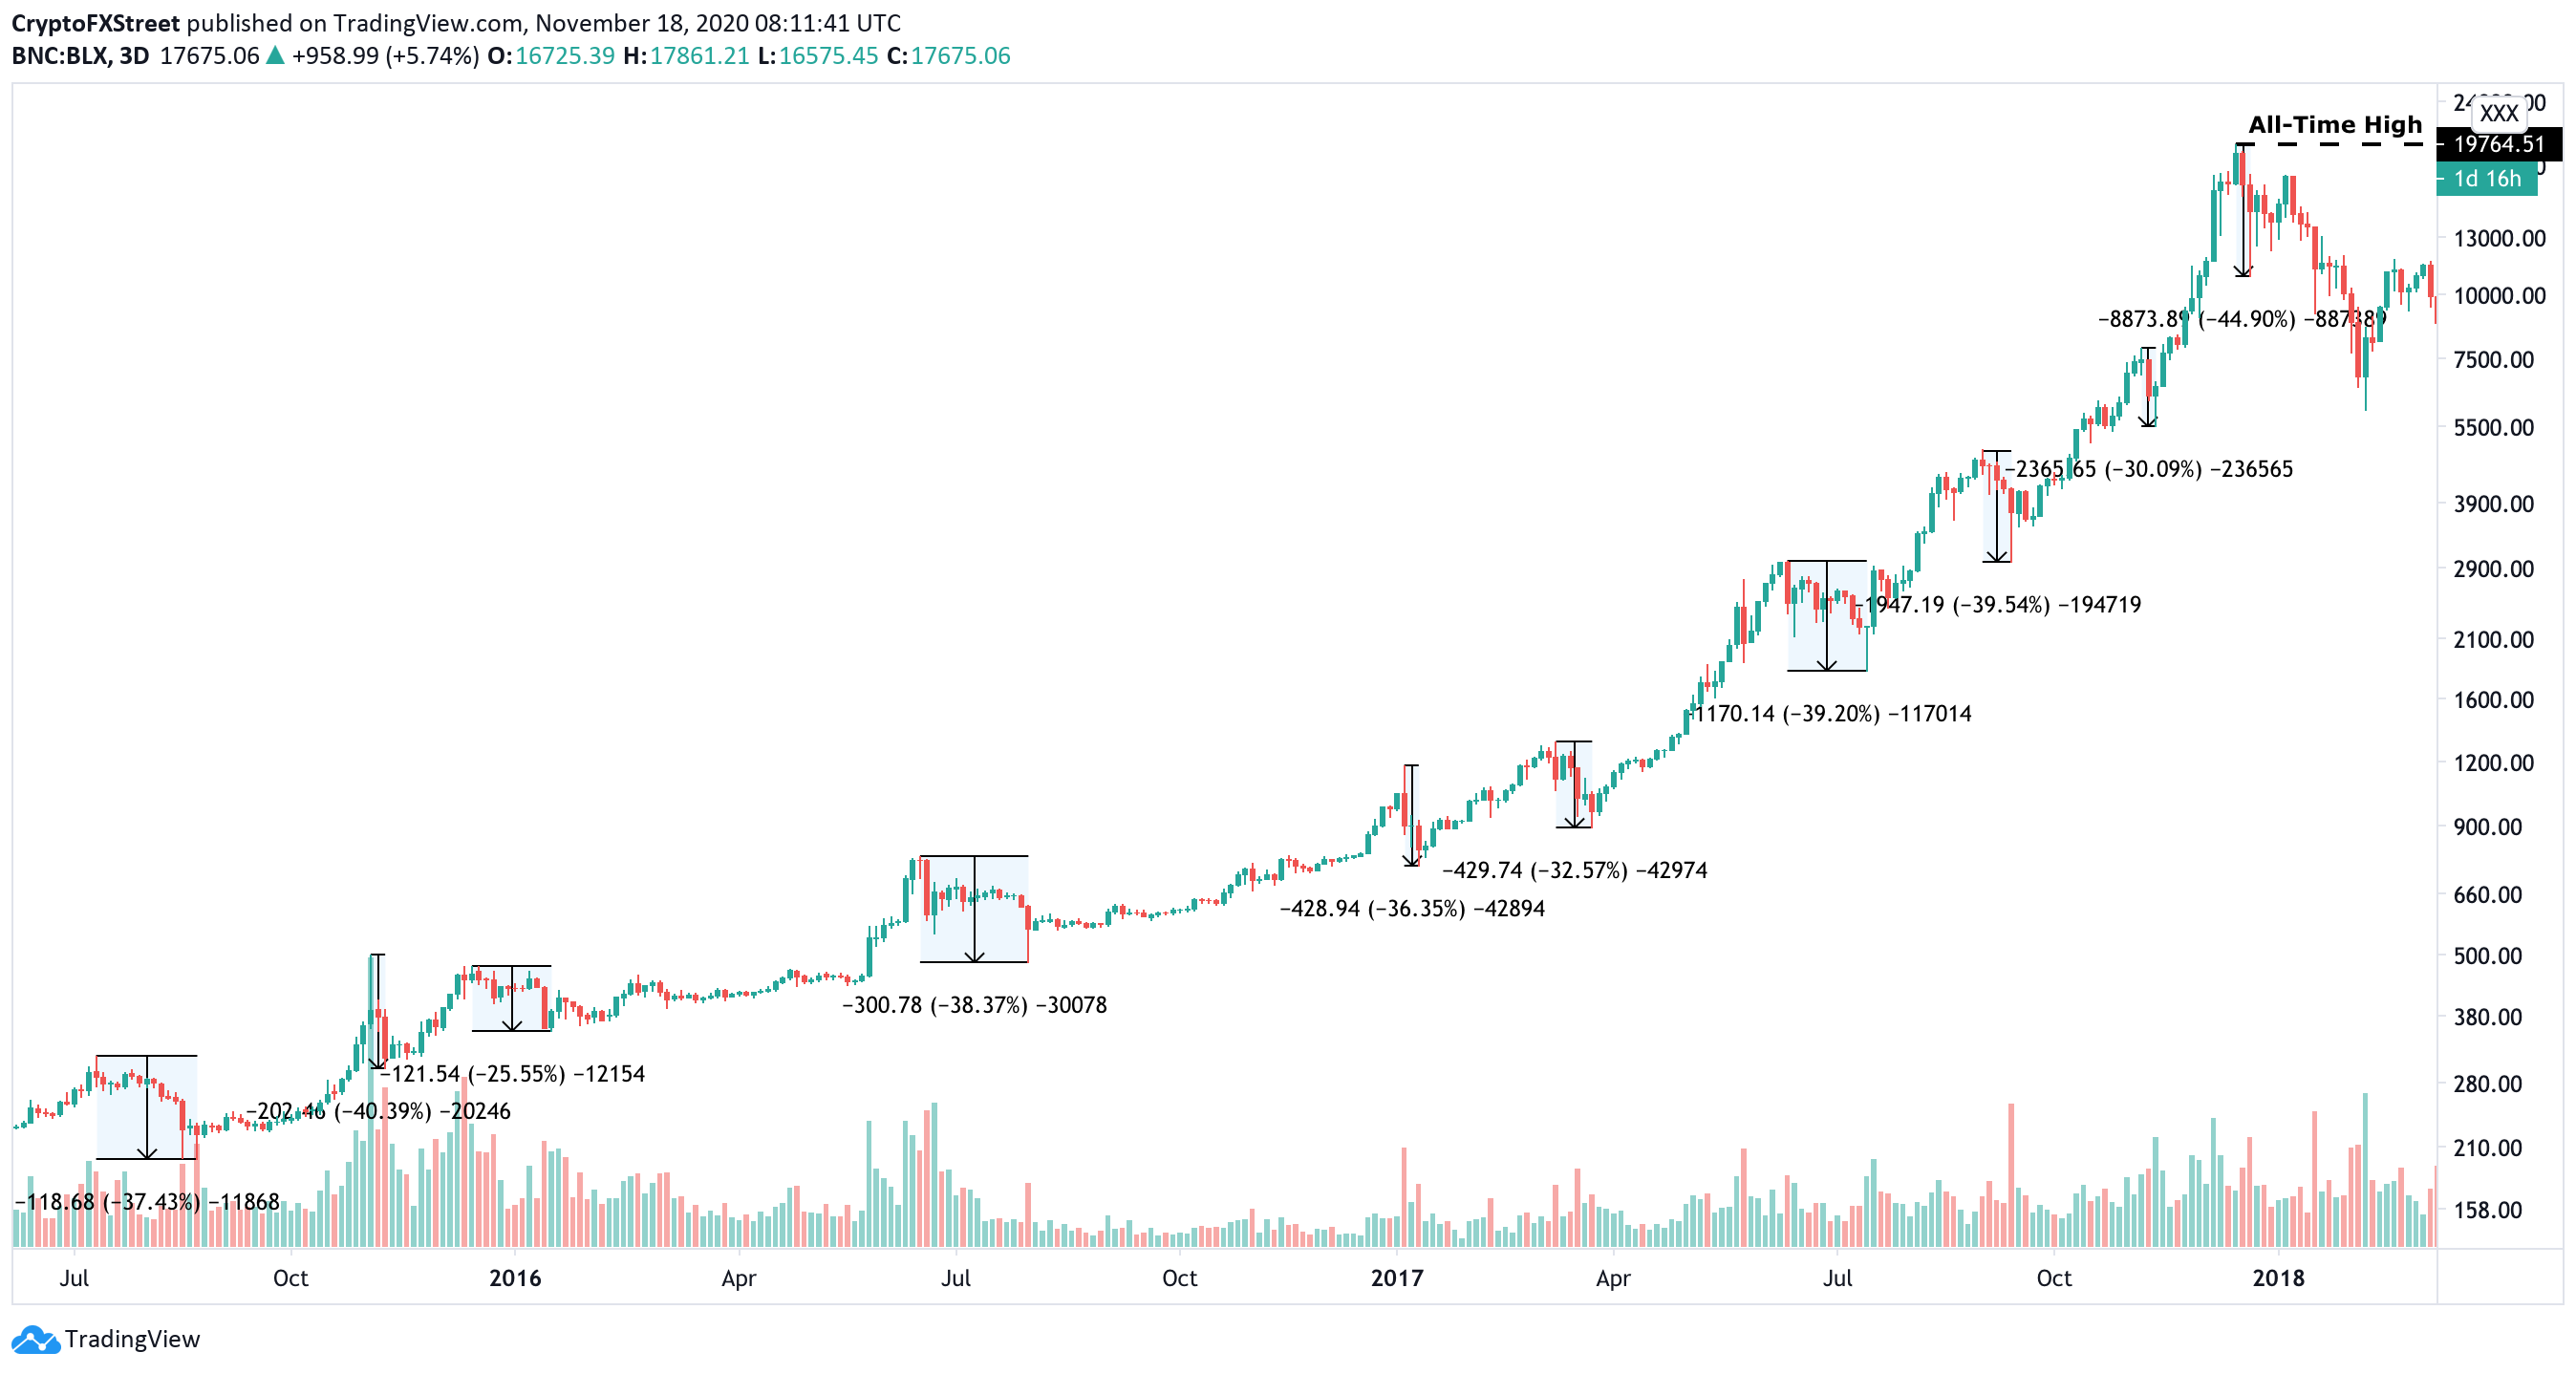 Bitcoin's history of corrections